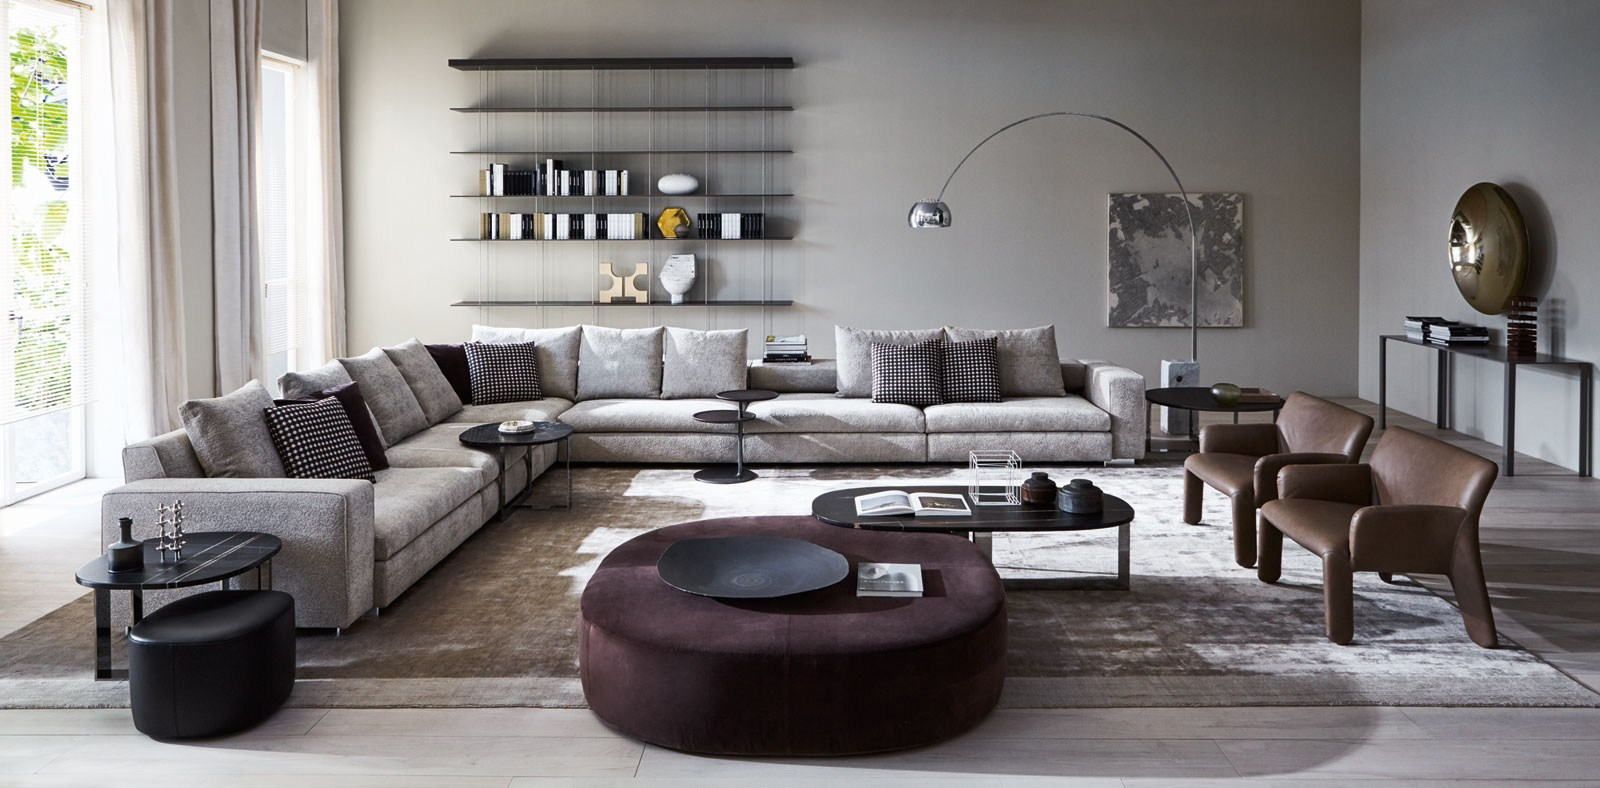 Molteni c turner sofa buy from campbell watson uk for Sofas modulares precios